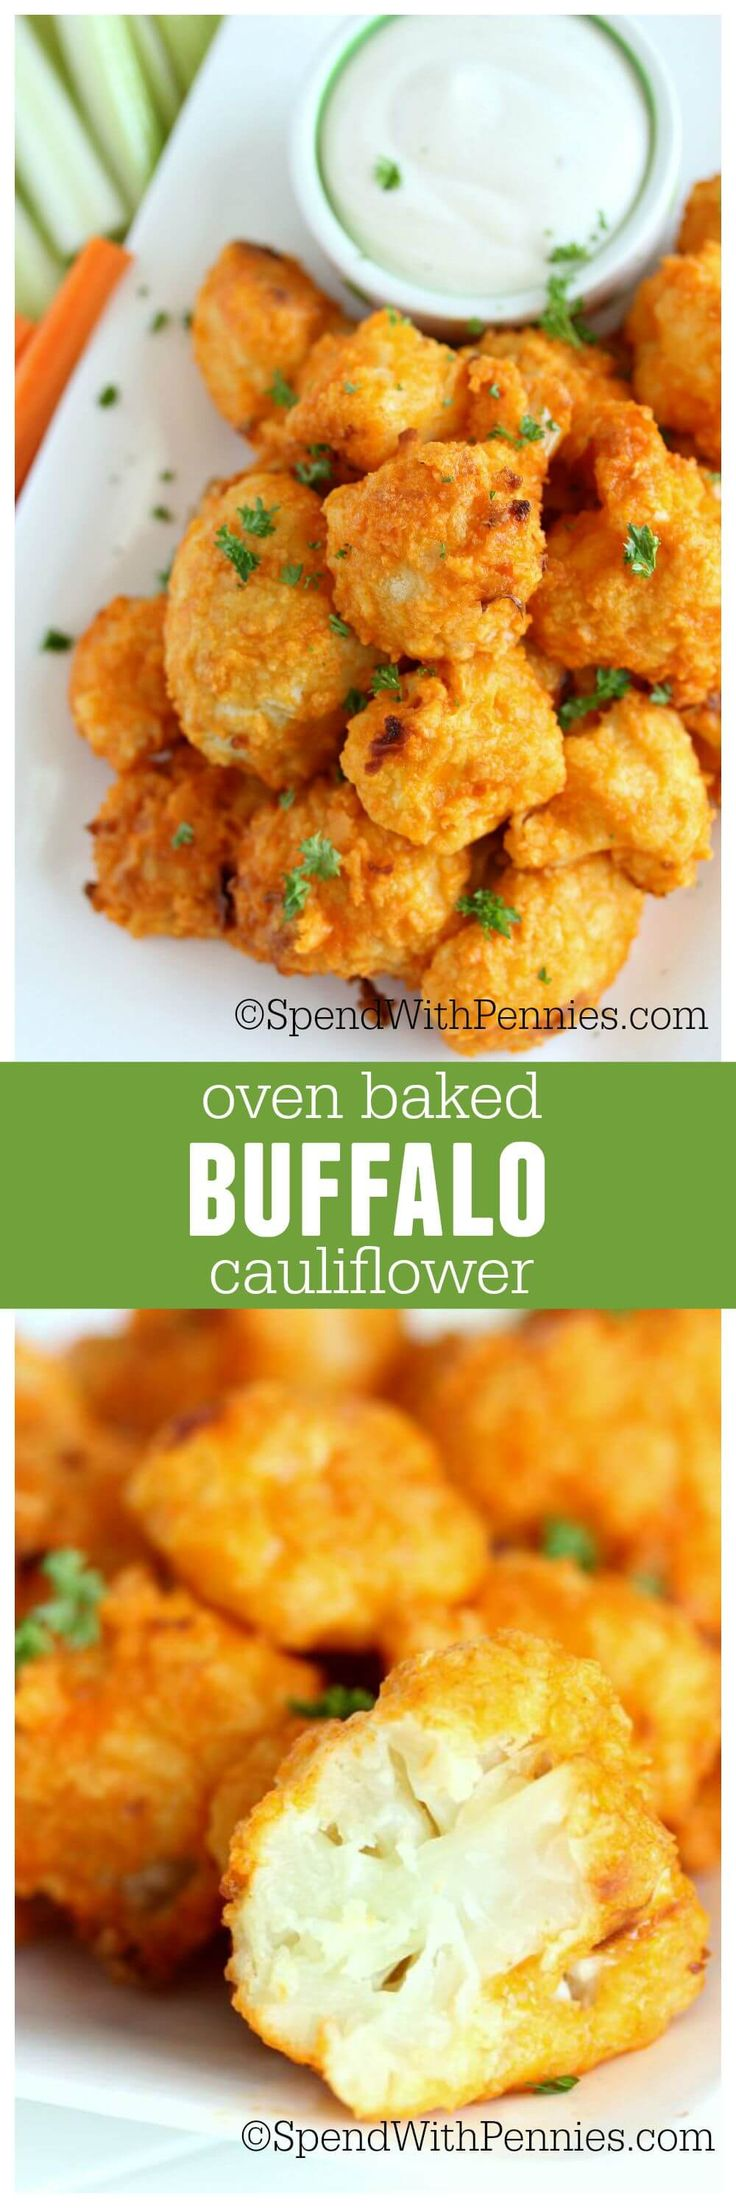 Oven Baked Buffalo Cauliflower bites are a crowd pleaser!! Tender morsels of cauliflower baked in a crispy crust and then loaded with buffalo sauce! If you like wings, you love this leaner tastier snack!